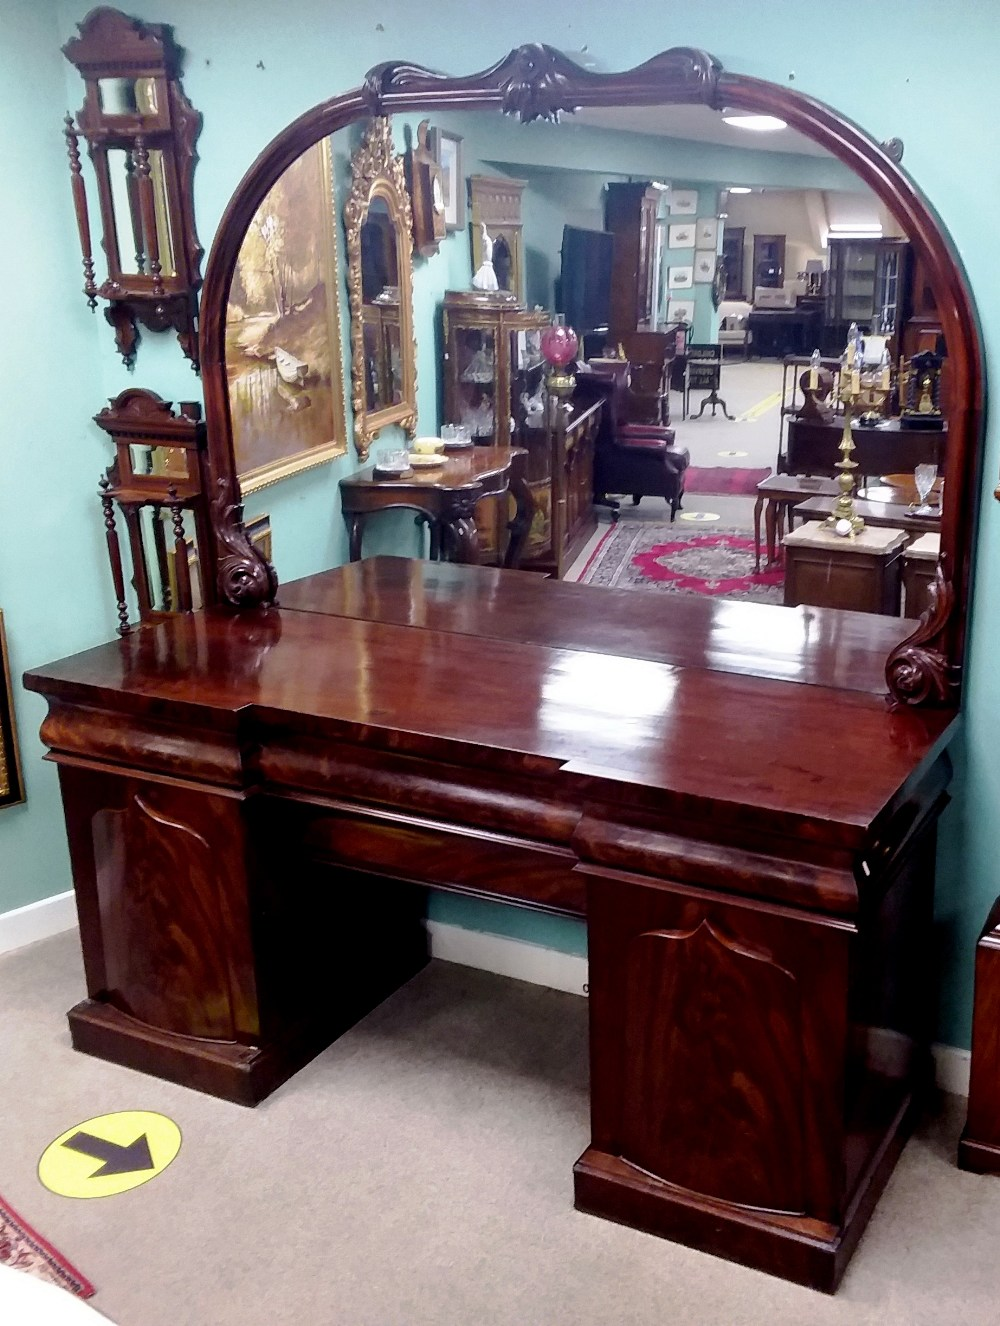 Very Impressive Early Vict Mahogany Mirror Back Sideboard in Mint Condition 200cm W 70cm D 230cm H